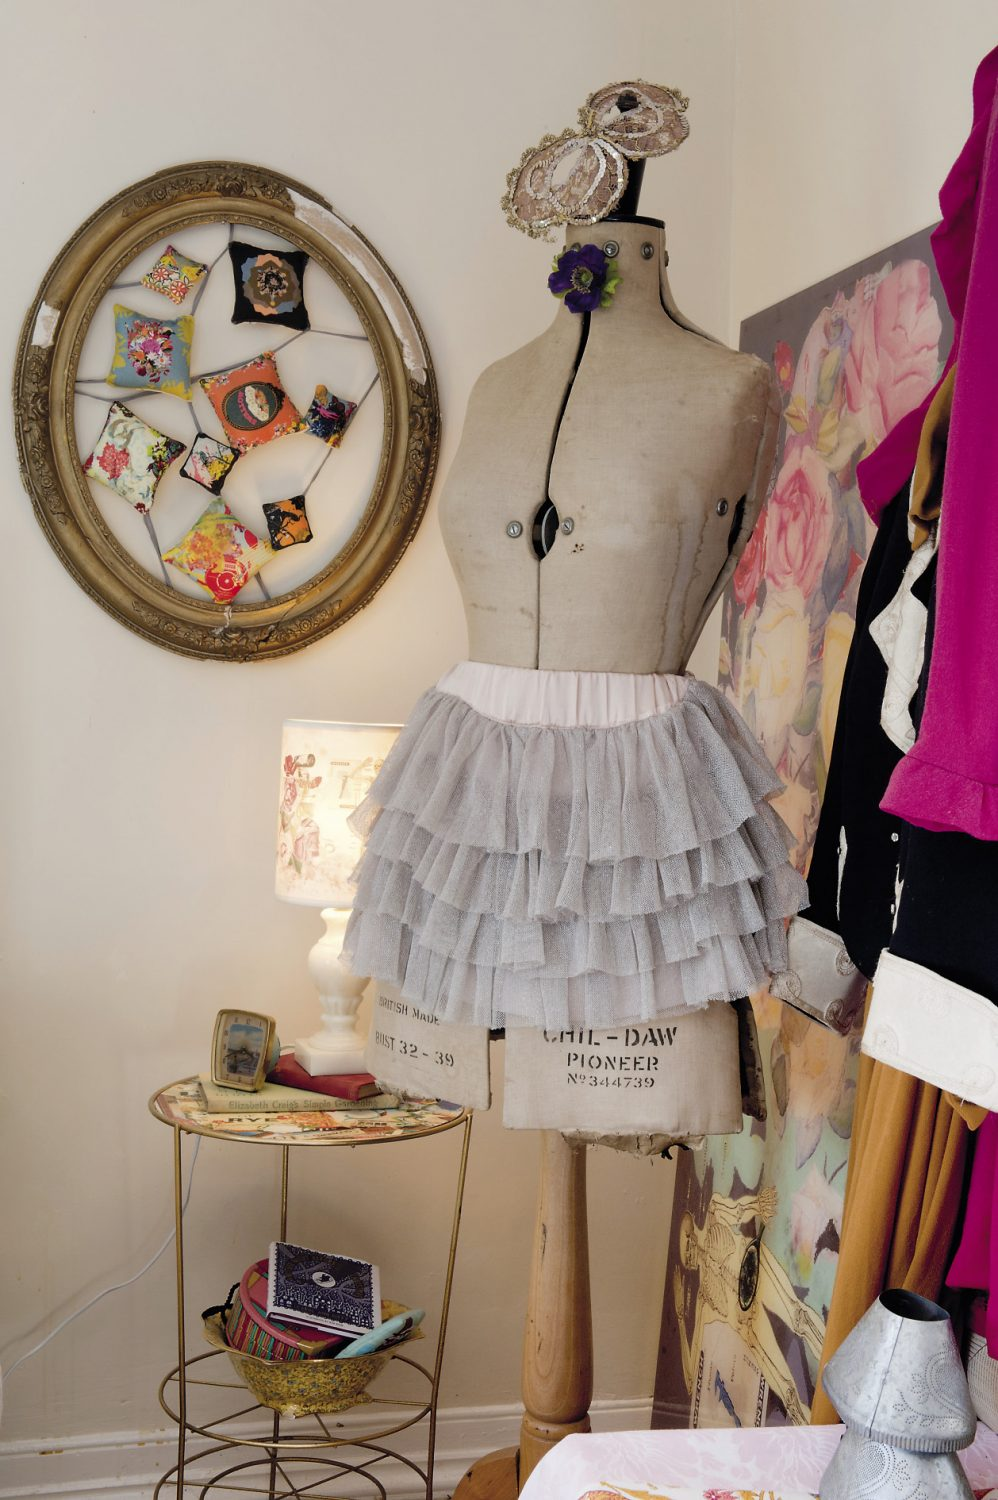 A tailor's mannequin wears a frilly skirt